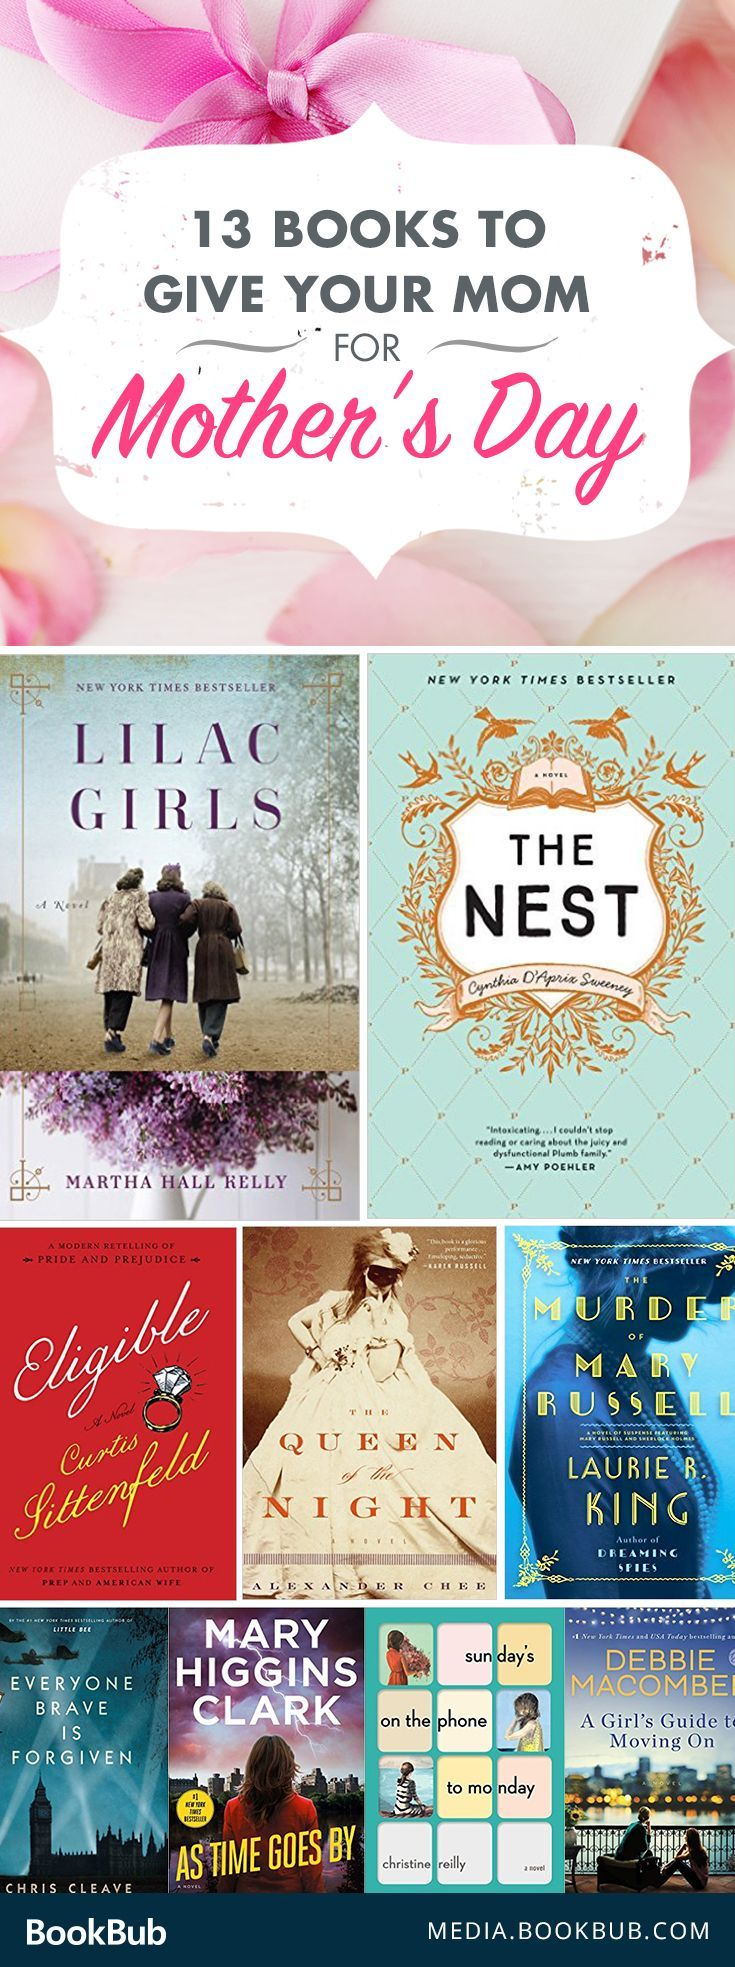 Looking for a Mother's Day gift idea? Check out these 13 books your mom is sure to love. From historical fiction novels to mysteries to thrillers, this reading list has it all!